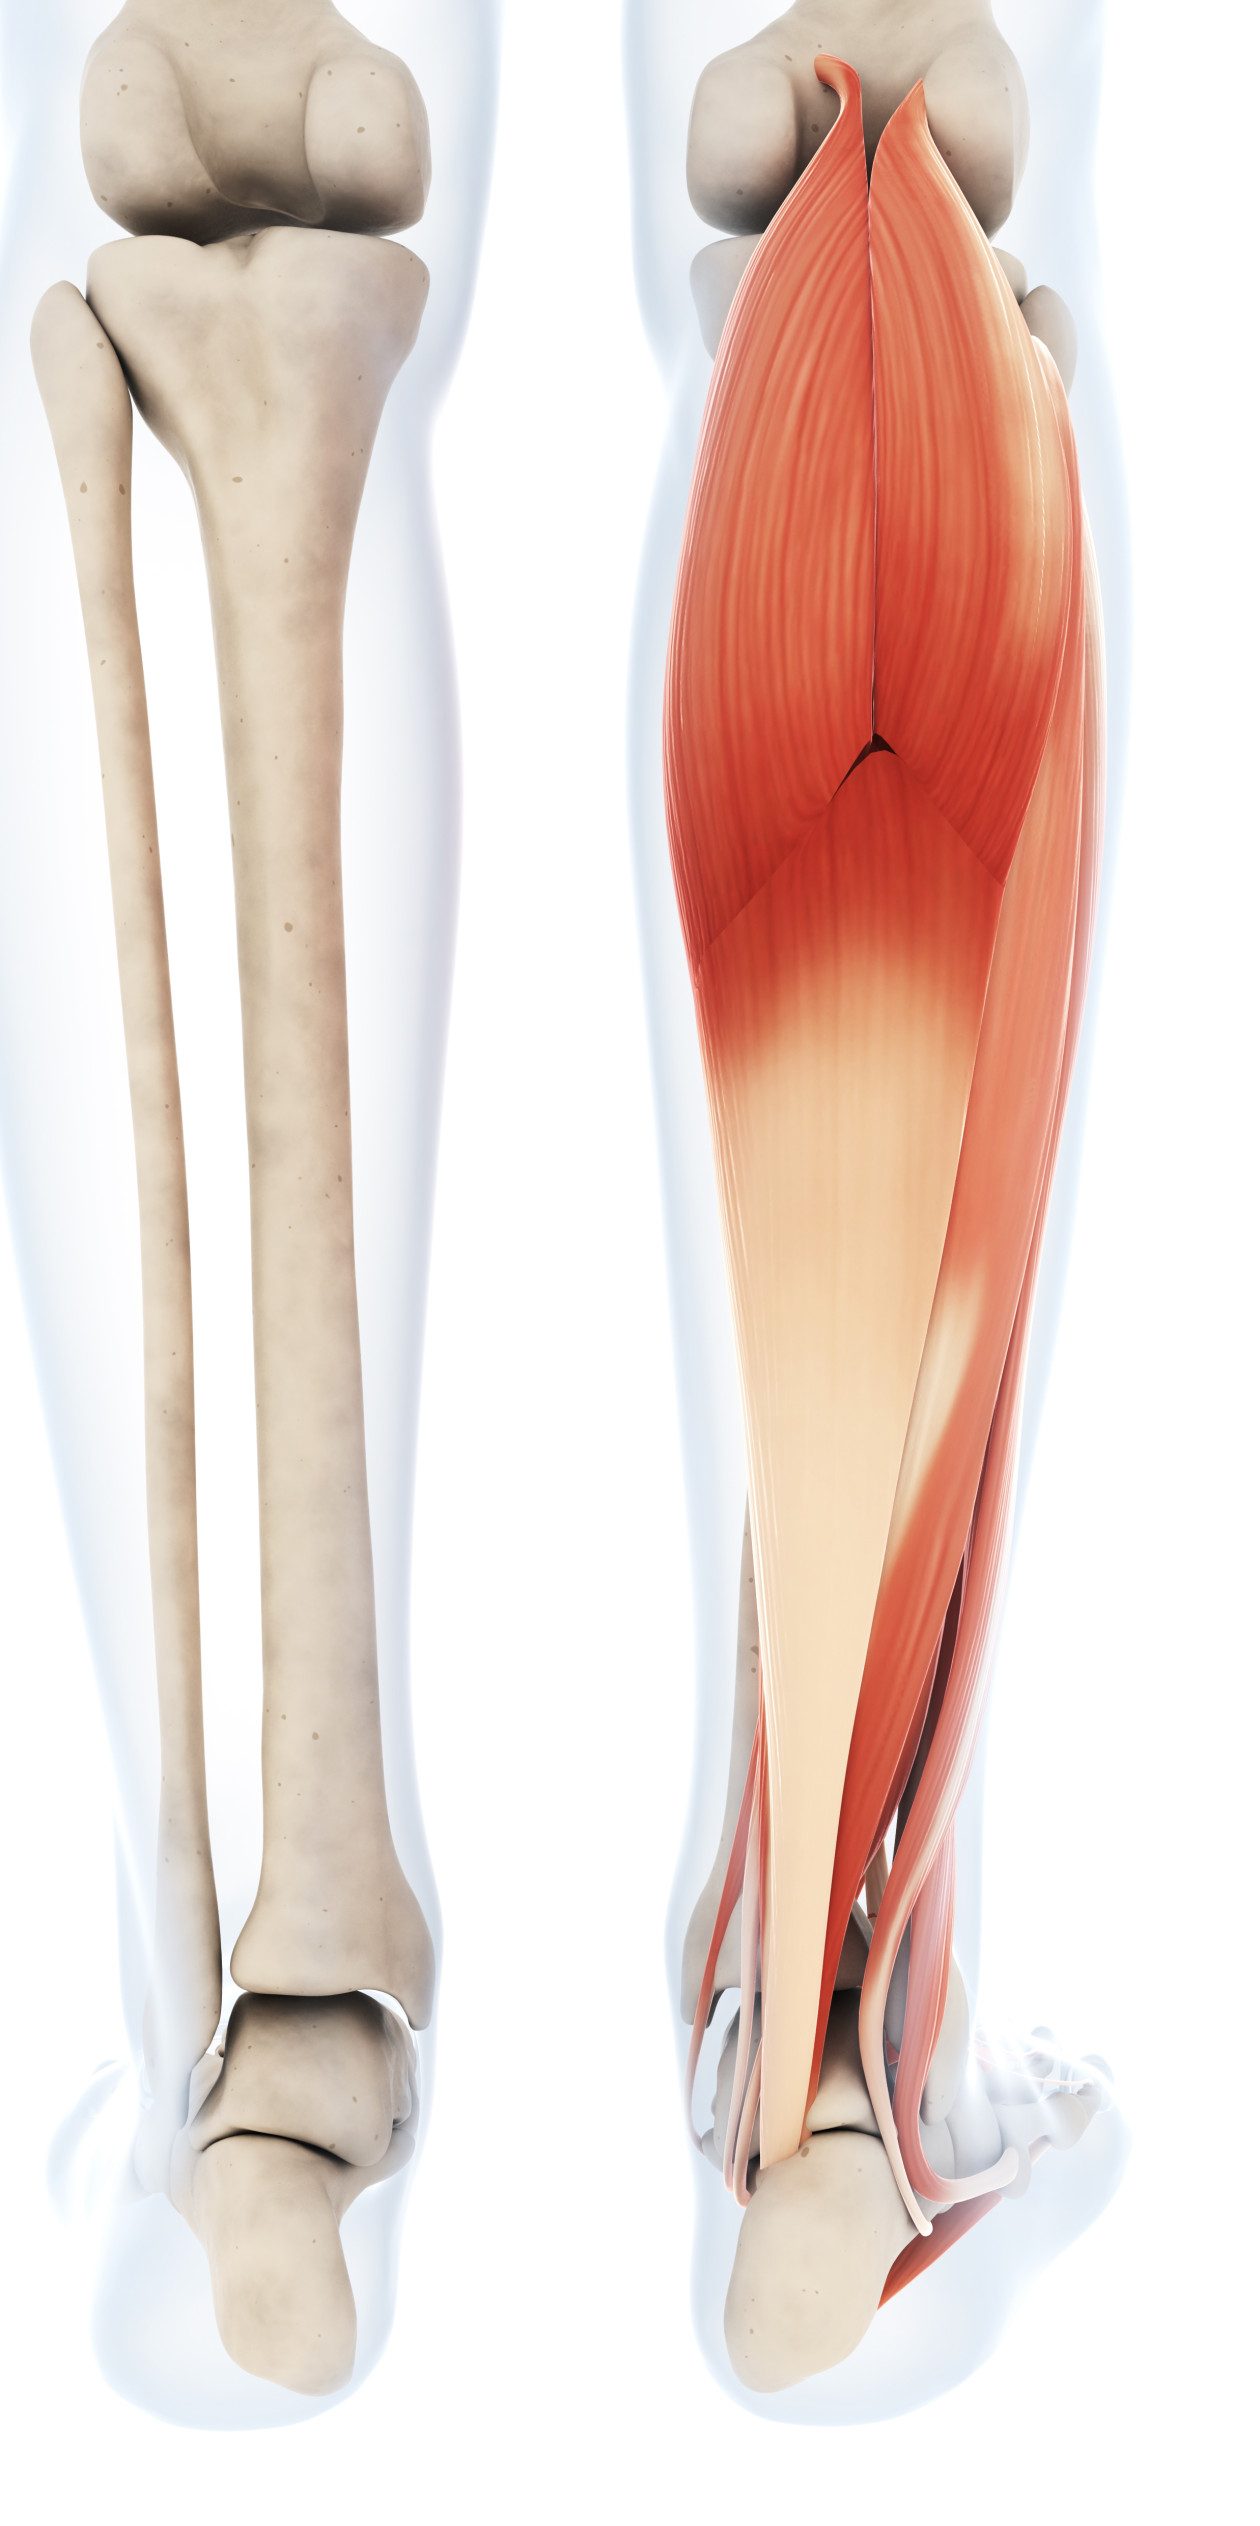 Gastrocnemius Notice The Bone View On The Left And How